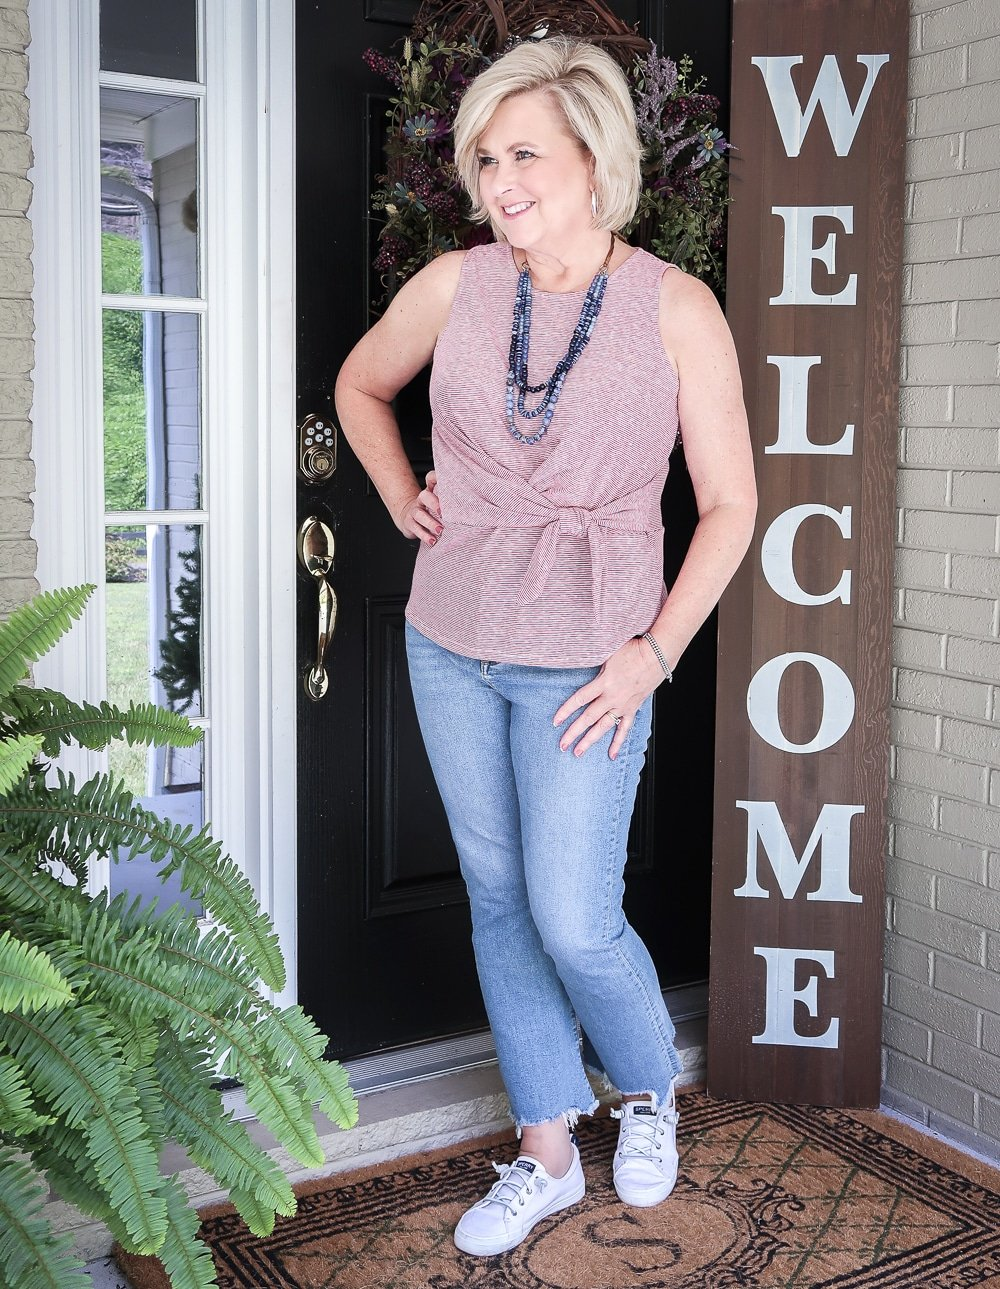 Fashion Blogger 50 Is Not Old is ready for looking to the side and wearing red white and blue top twist top, distressed jeans, and Sperry sneakers